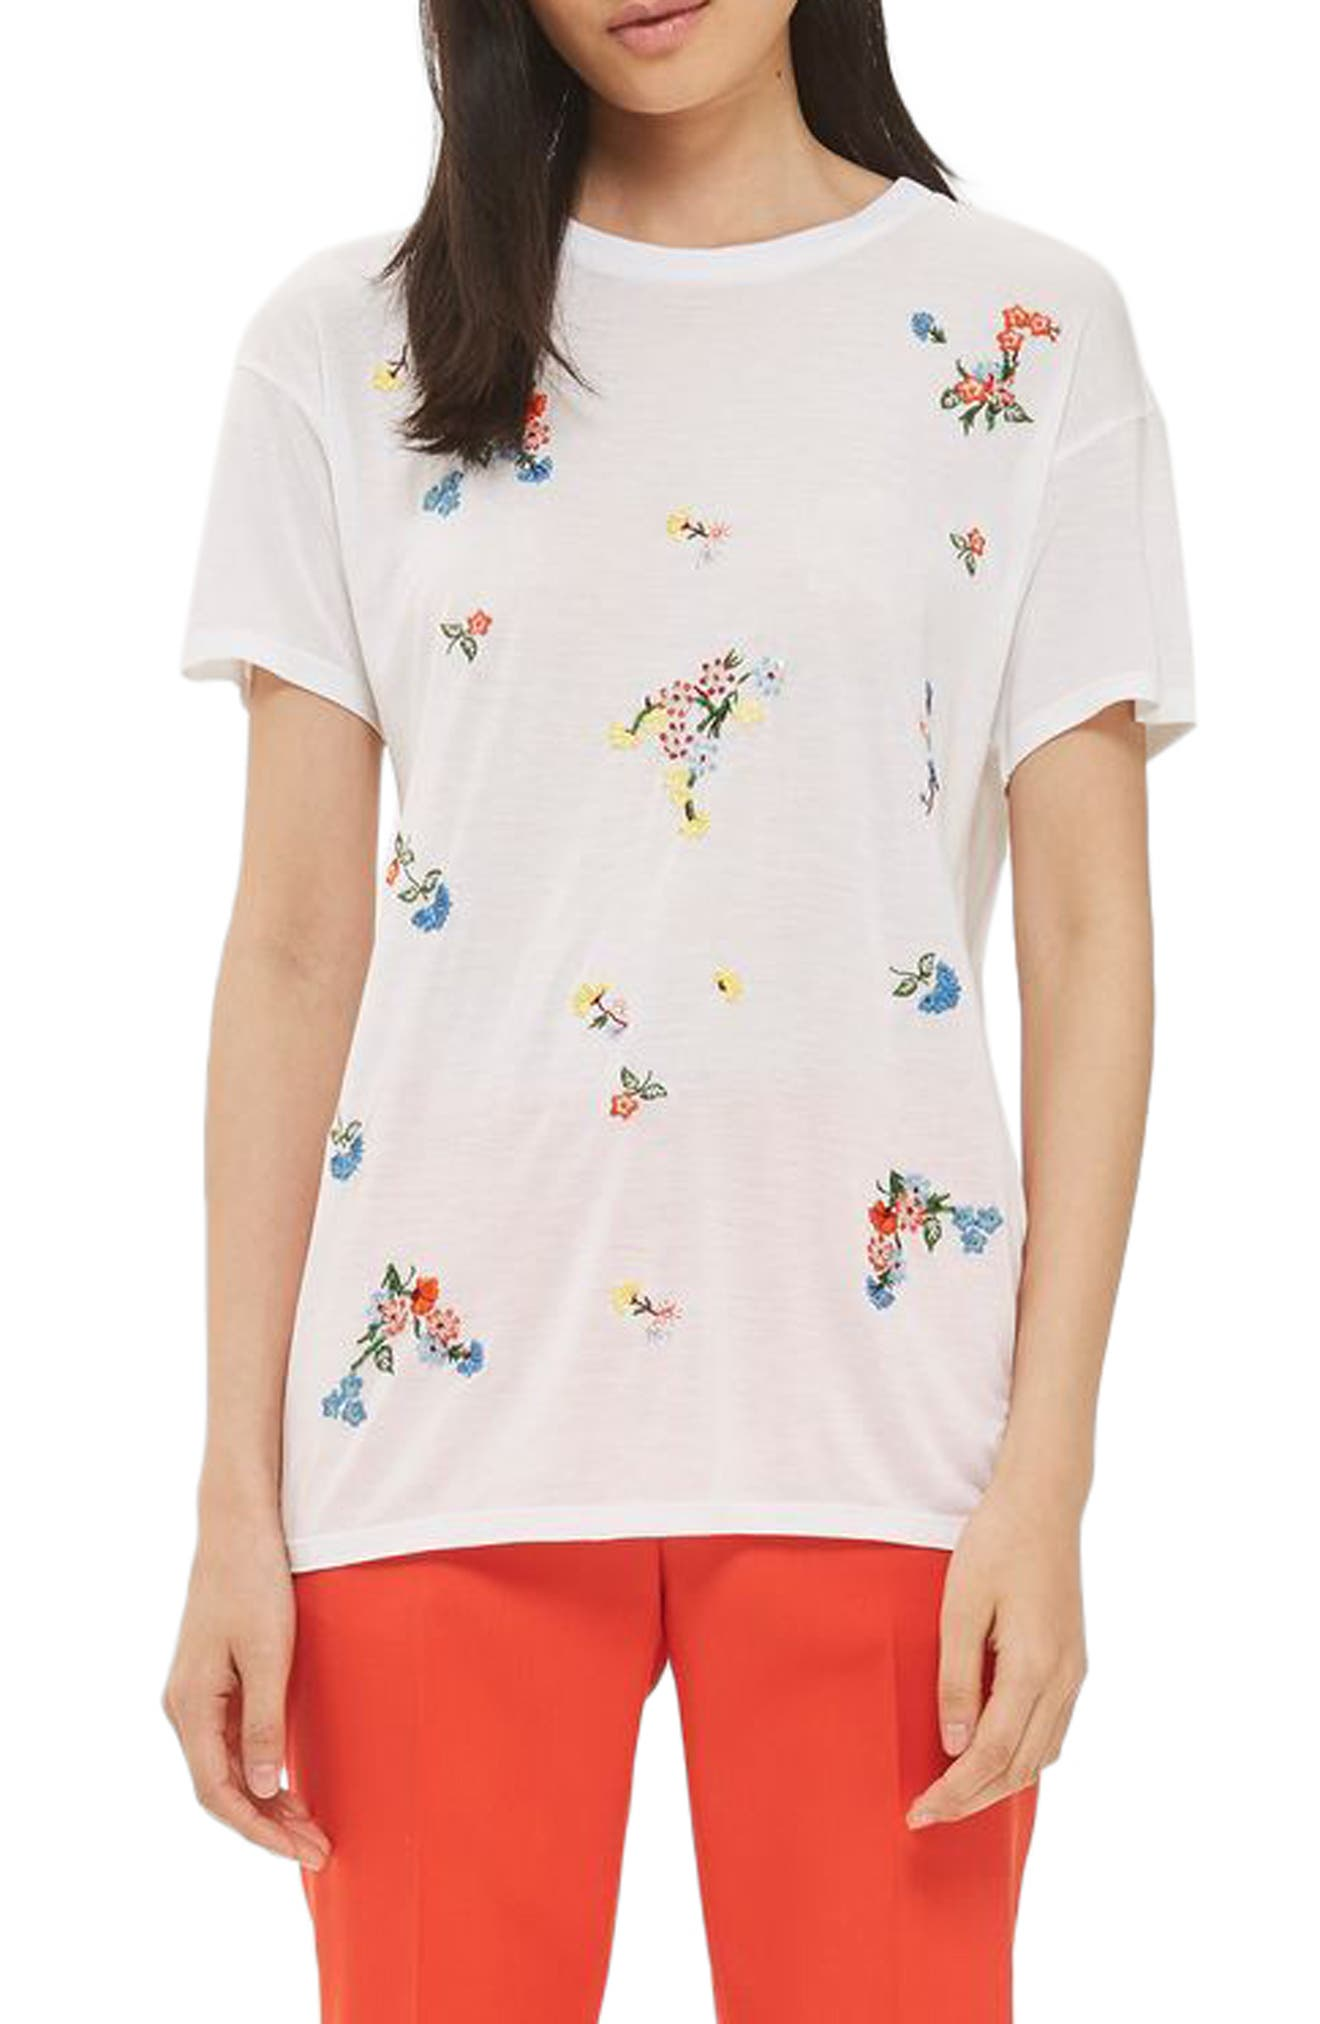 Topshop Embroidered Floral Tee